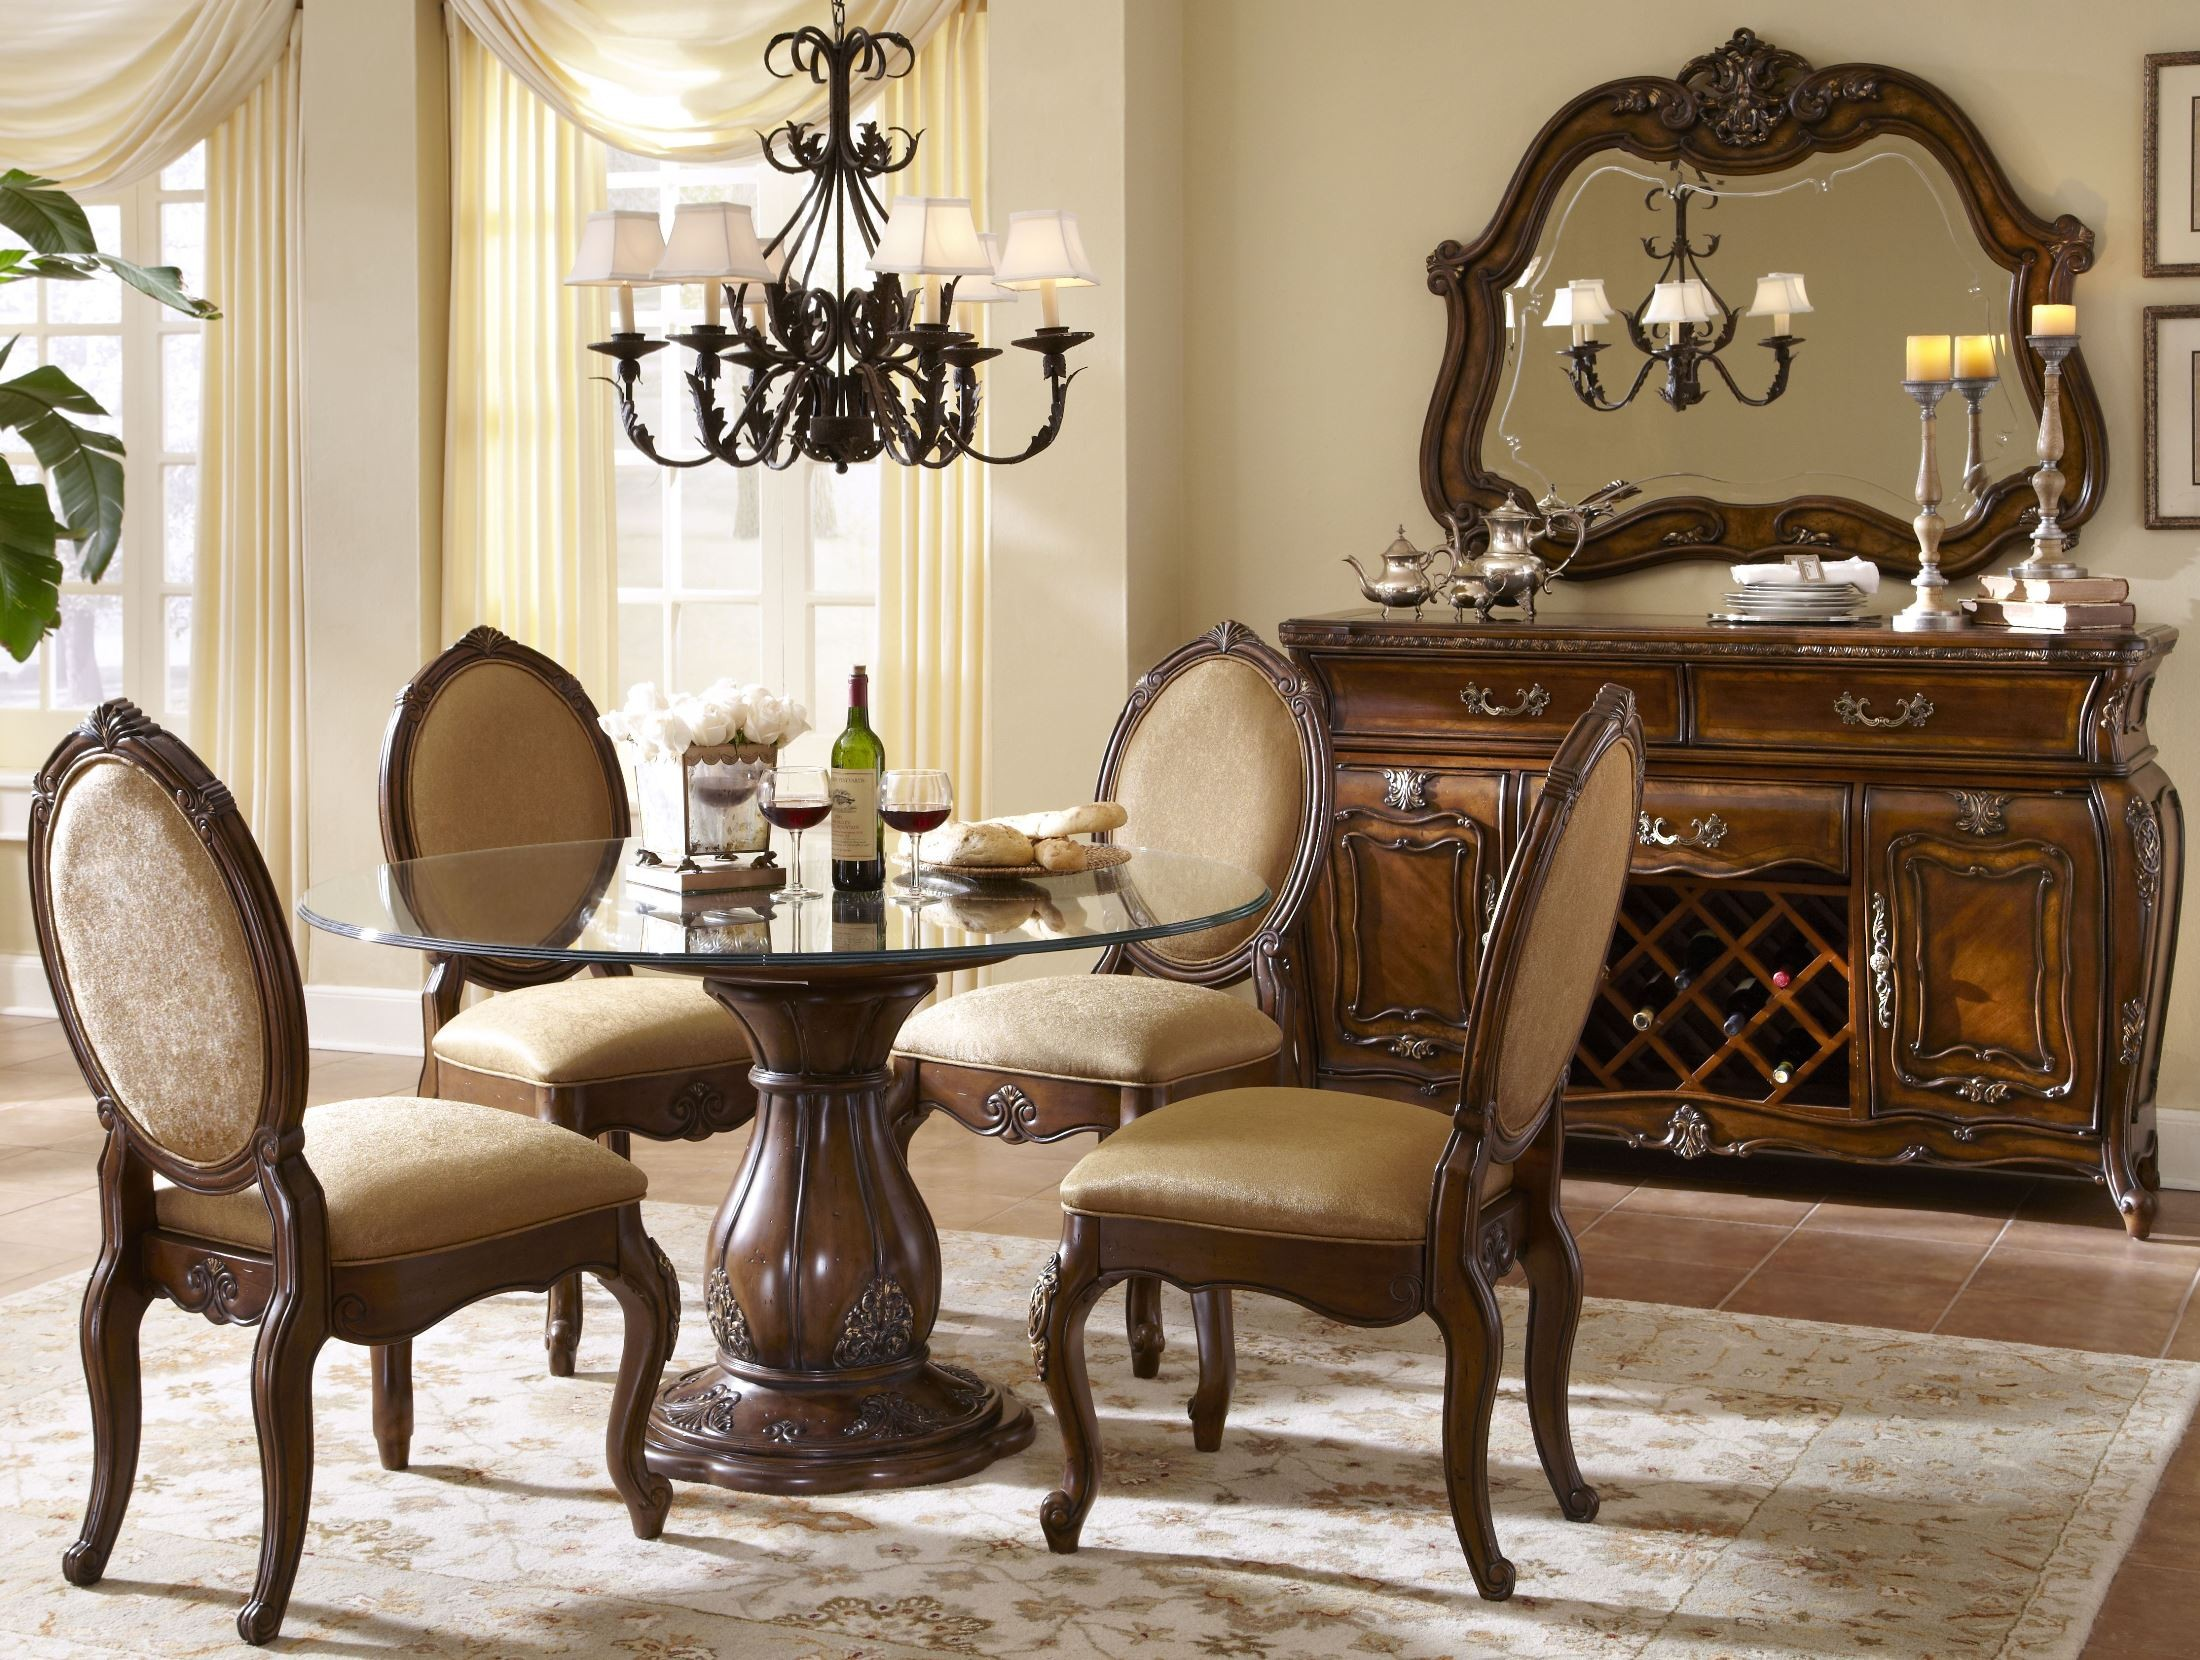 Lavelle Melange 54 Round Glass Top Dining Room Set from